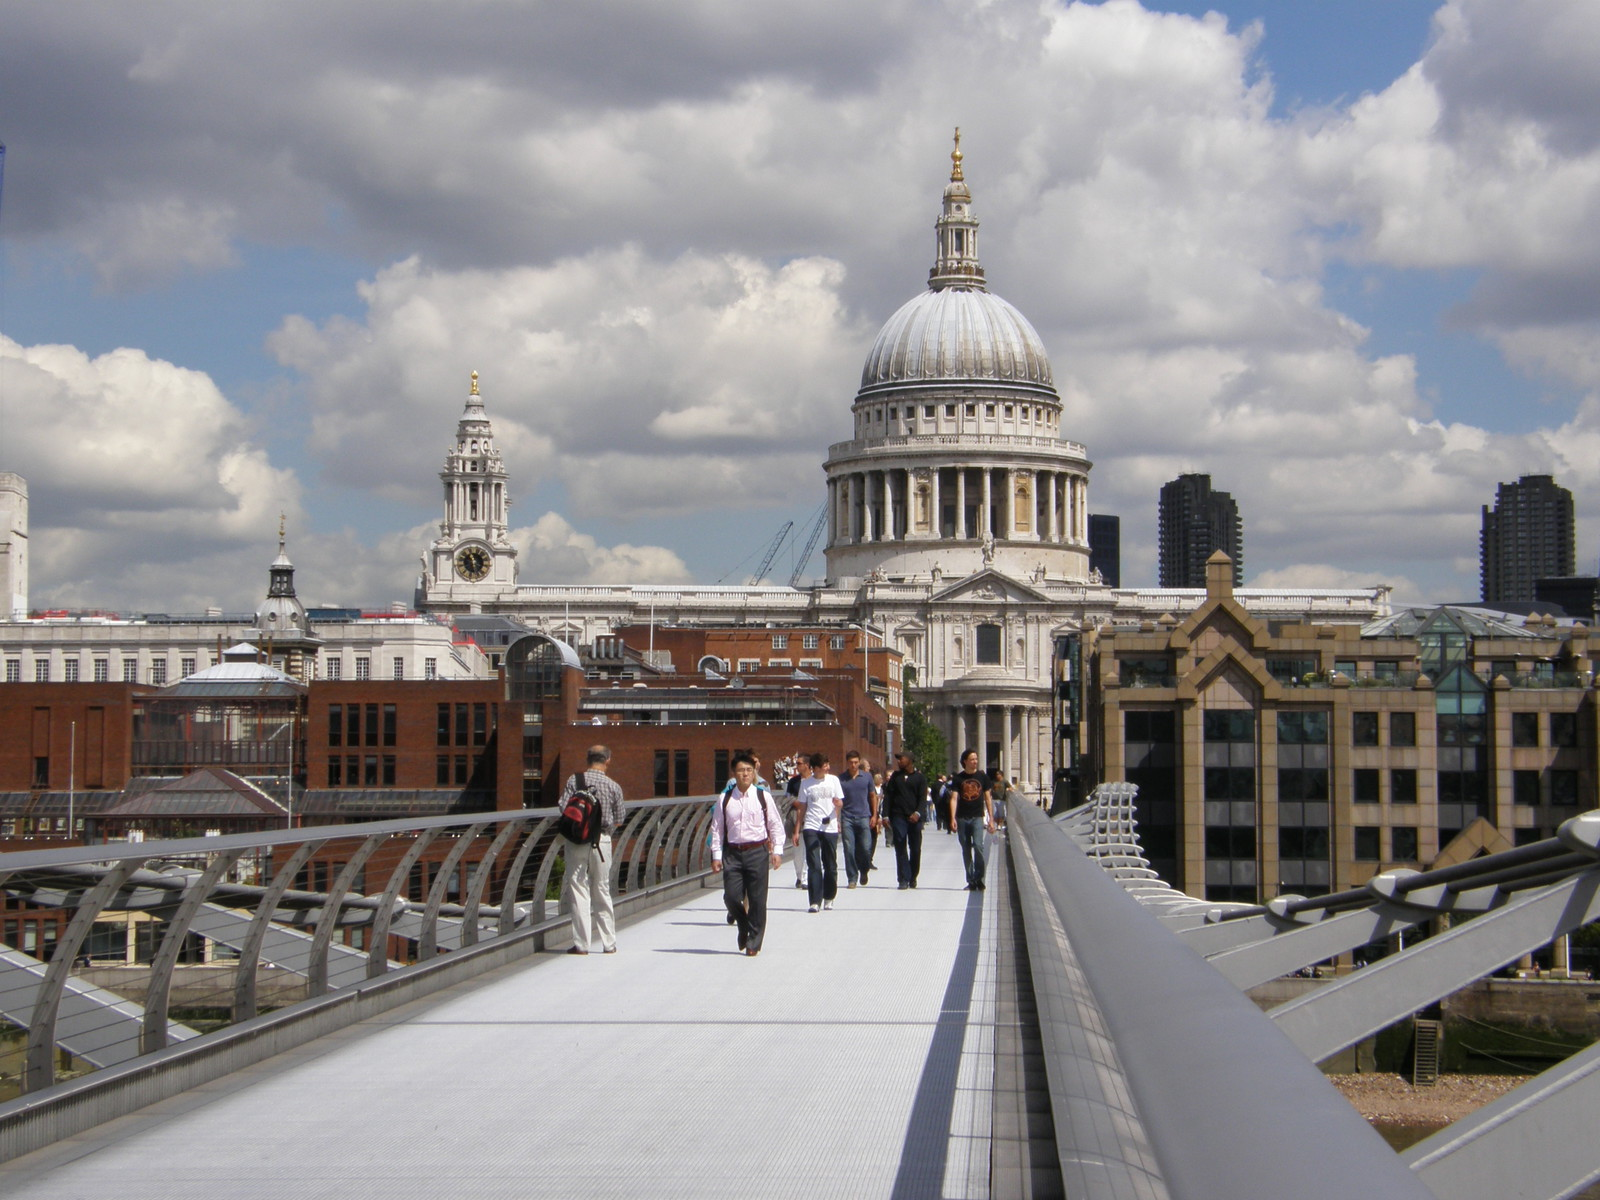 The Millennium Bridge